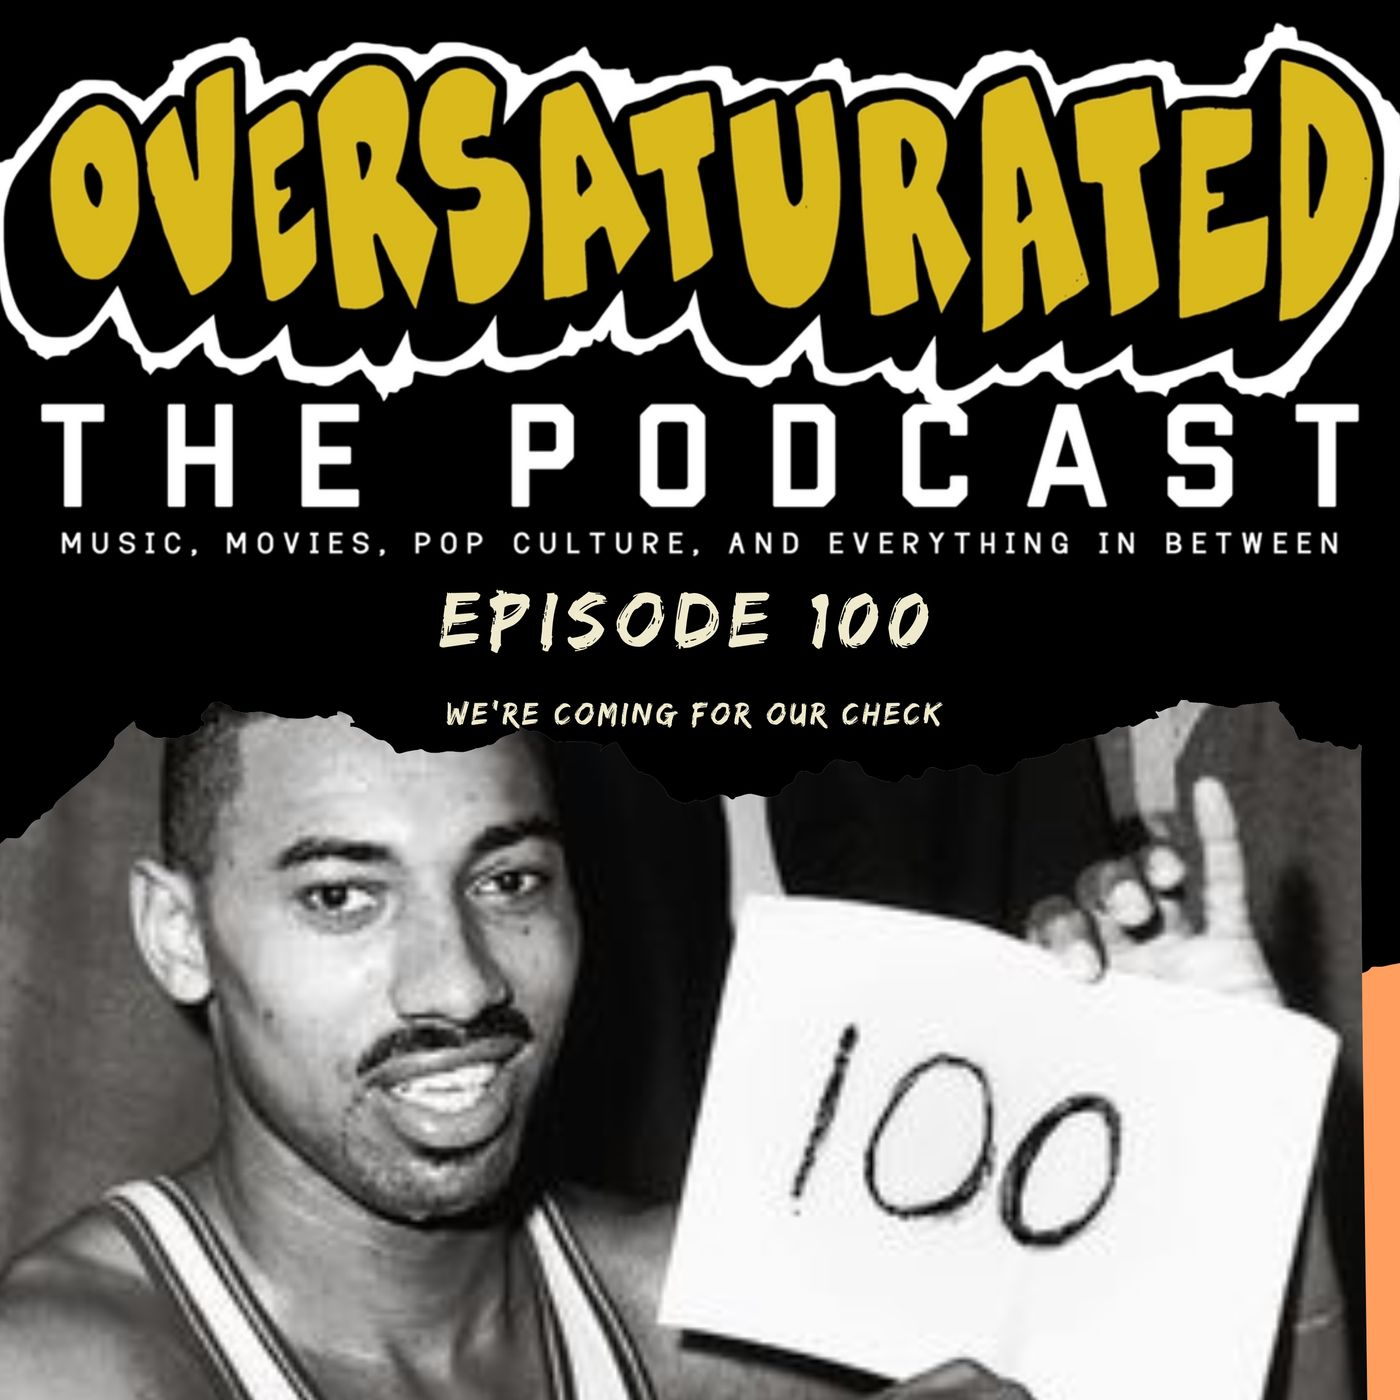 Episode 100- We're Coming For Our Check